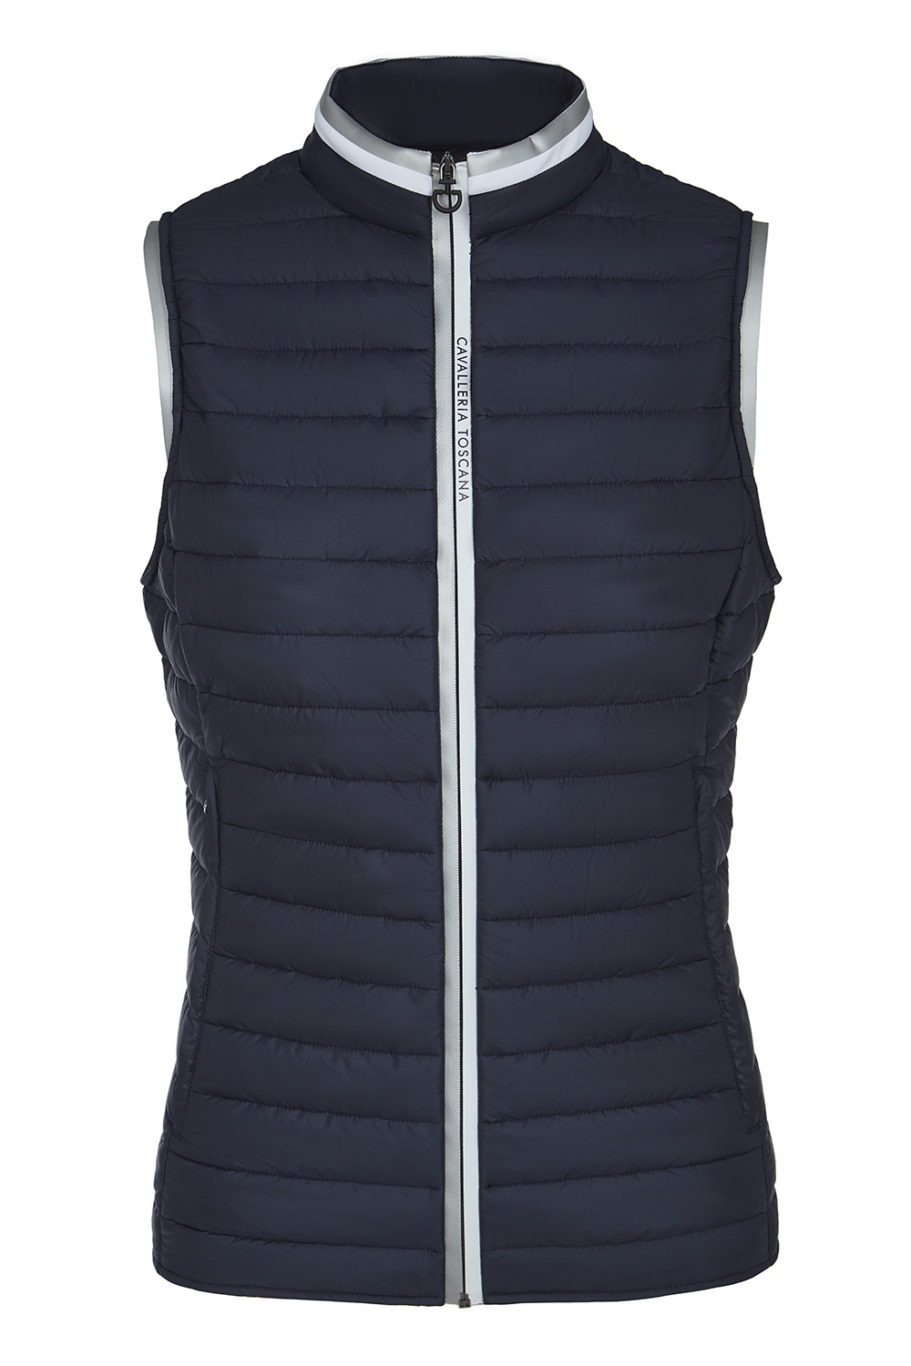 ULTRALIGHT PACK. PUFFER VEST